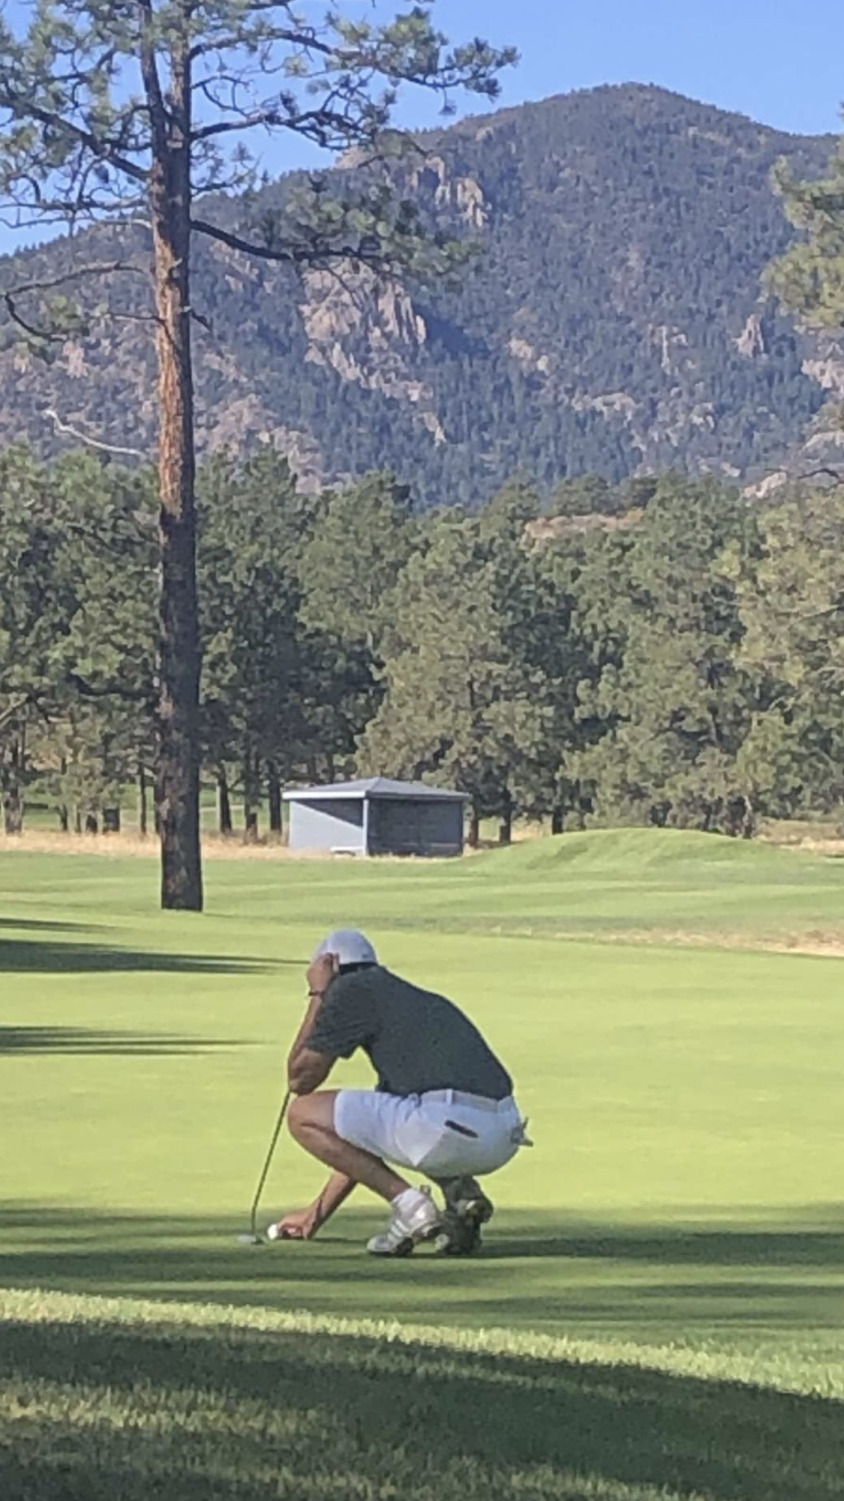 Bryce Leafgren (20) lines up for a putt at Eisenhower Blue at Air Force Academy